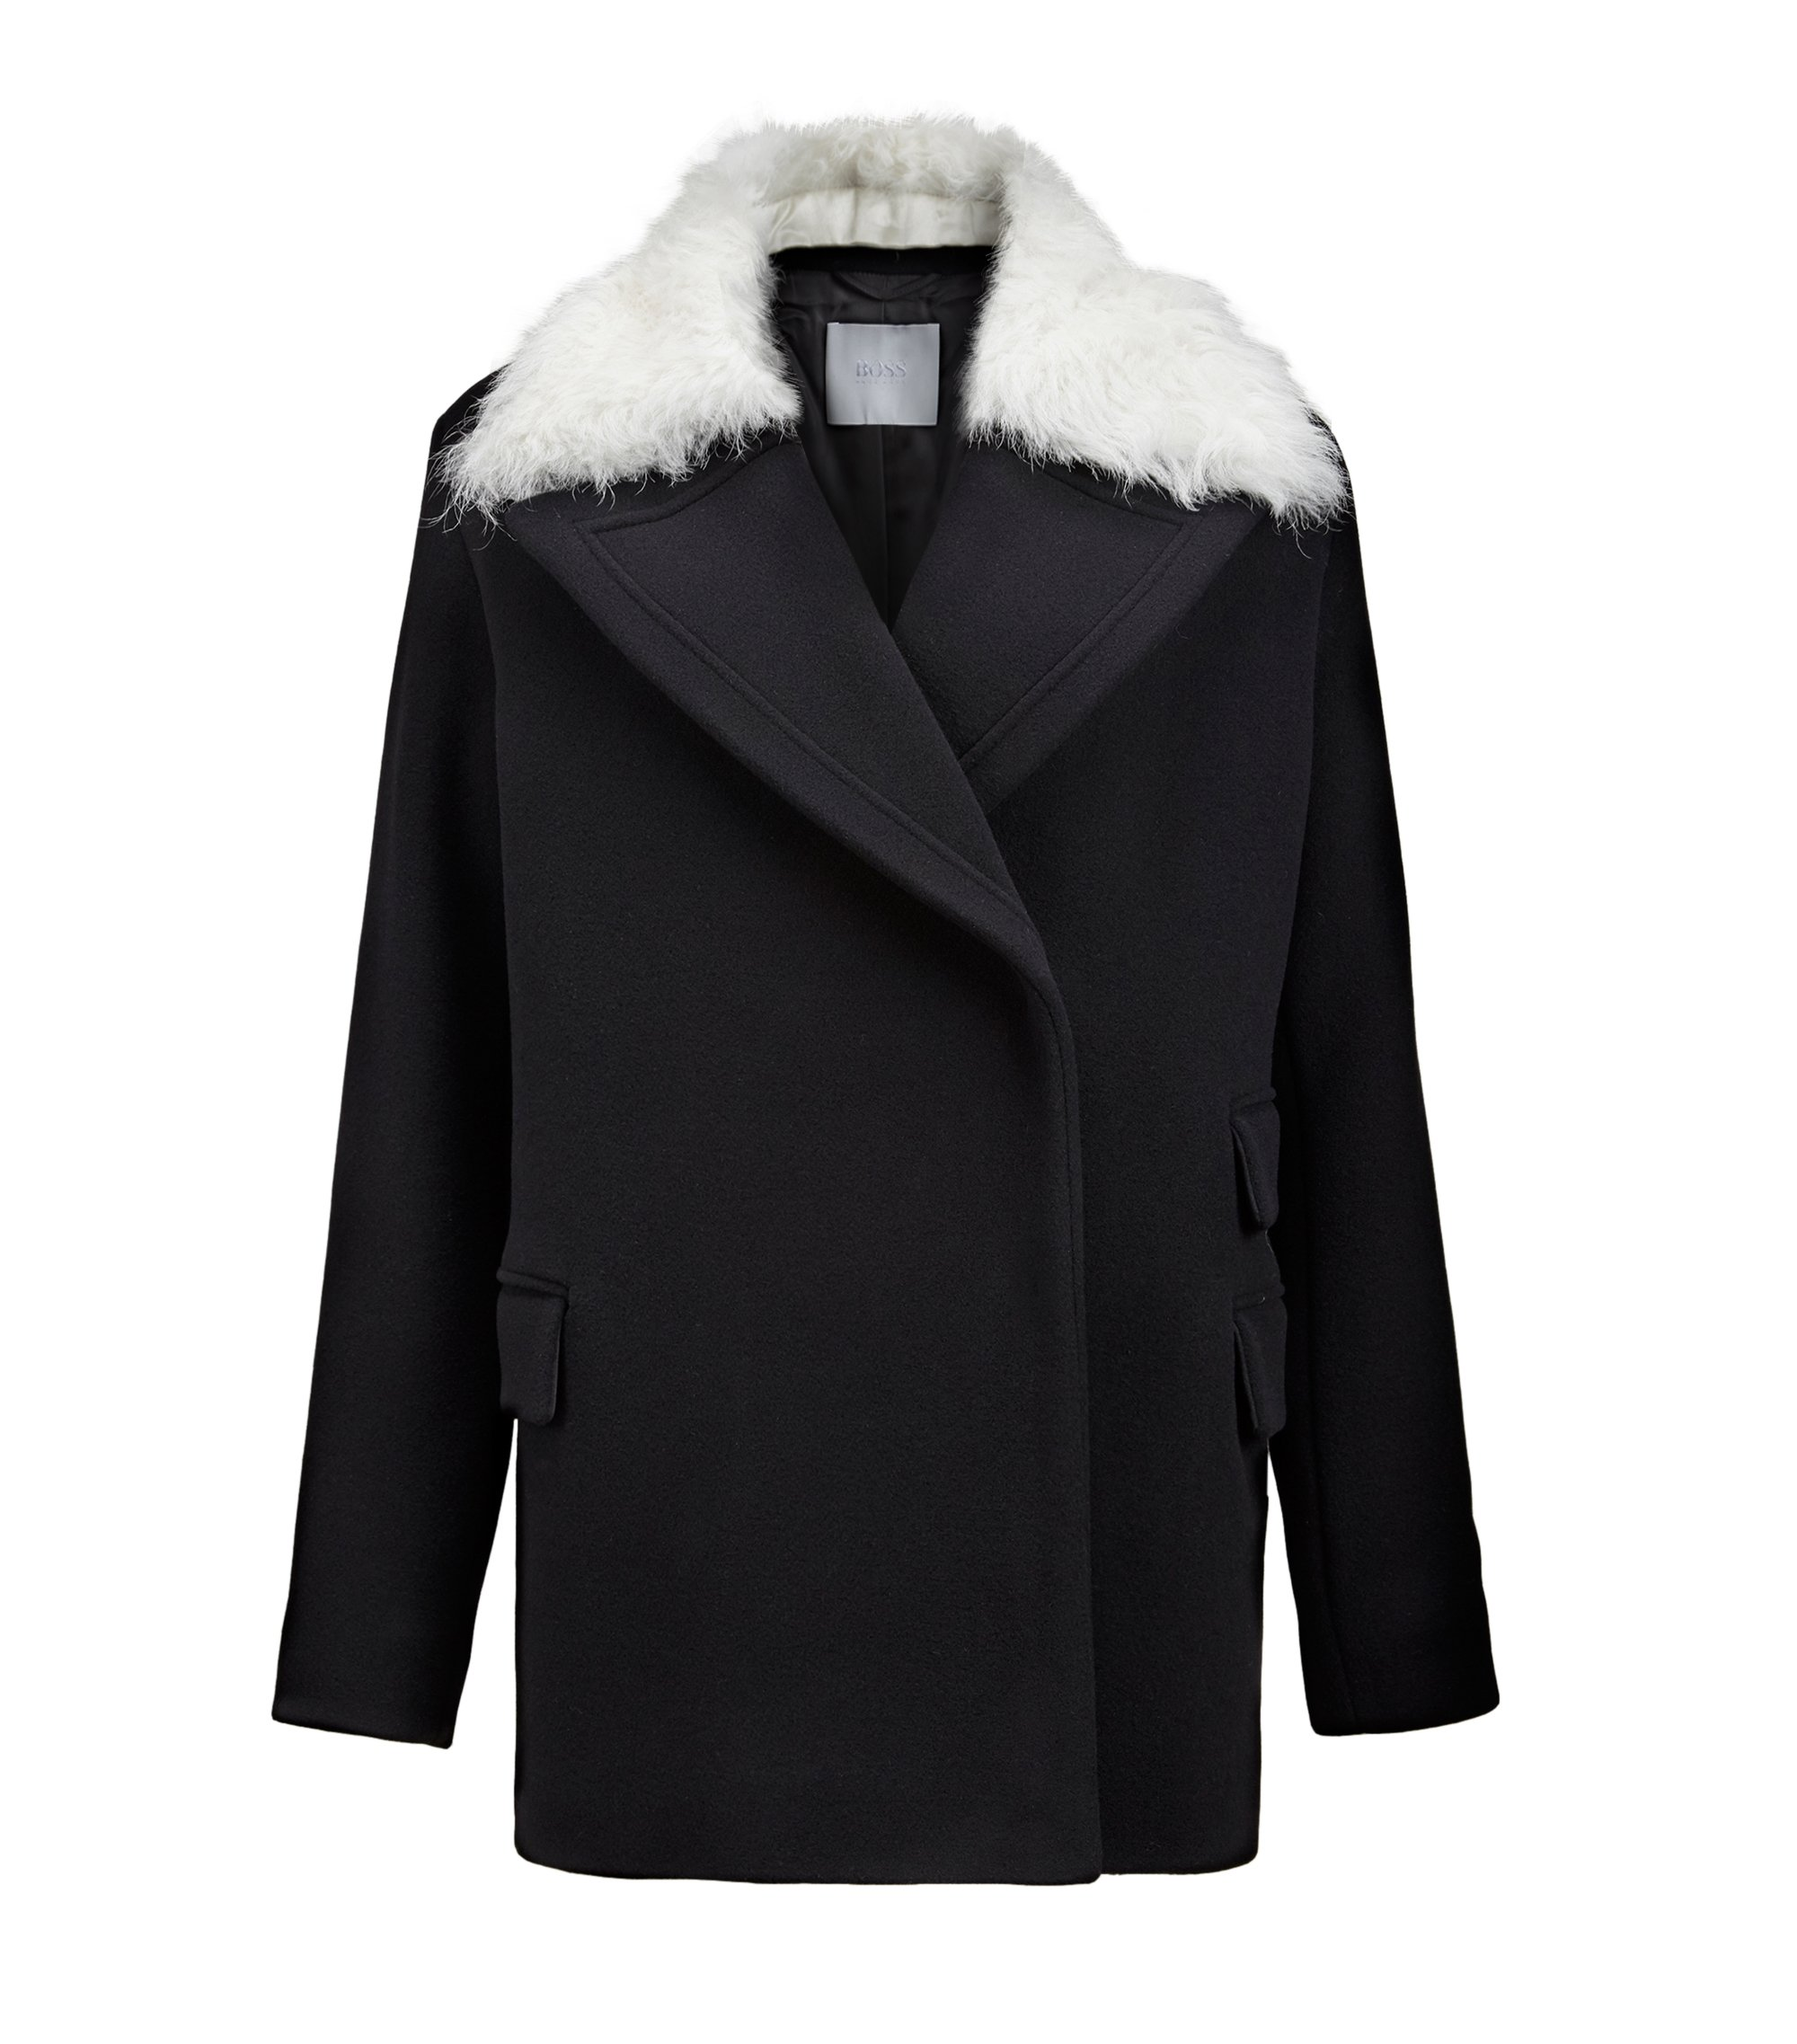 Shearling Wool-Cashmere Jacket | FS Palisena, Black